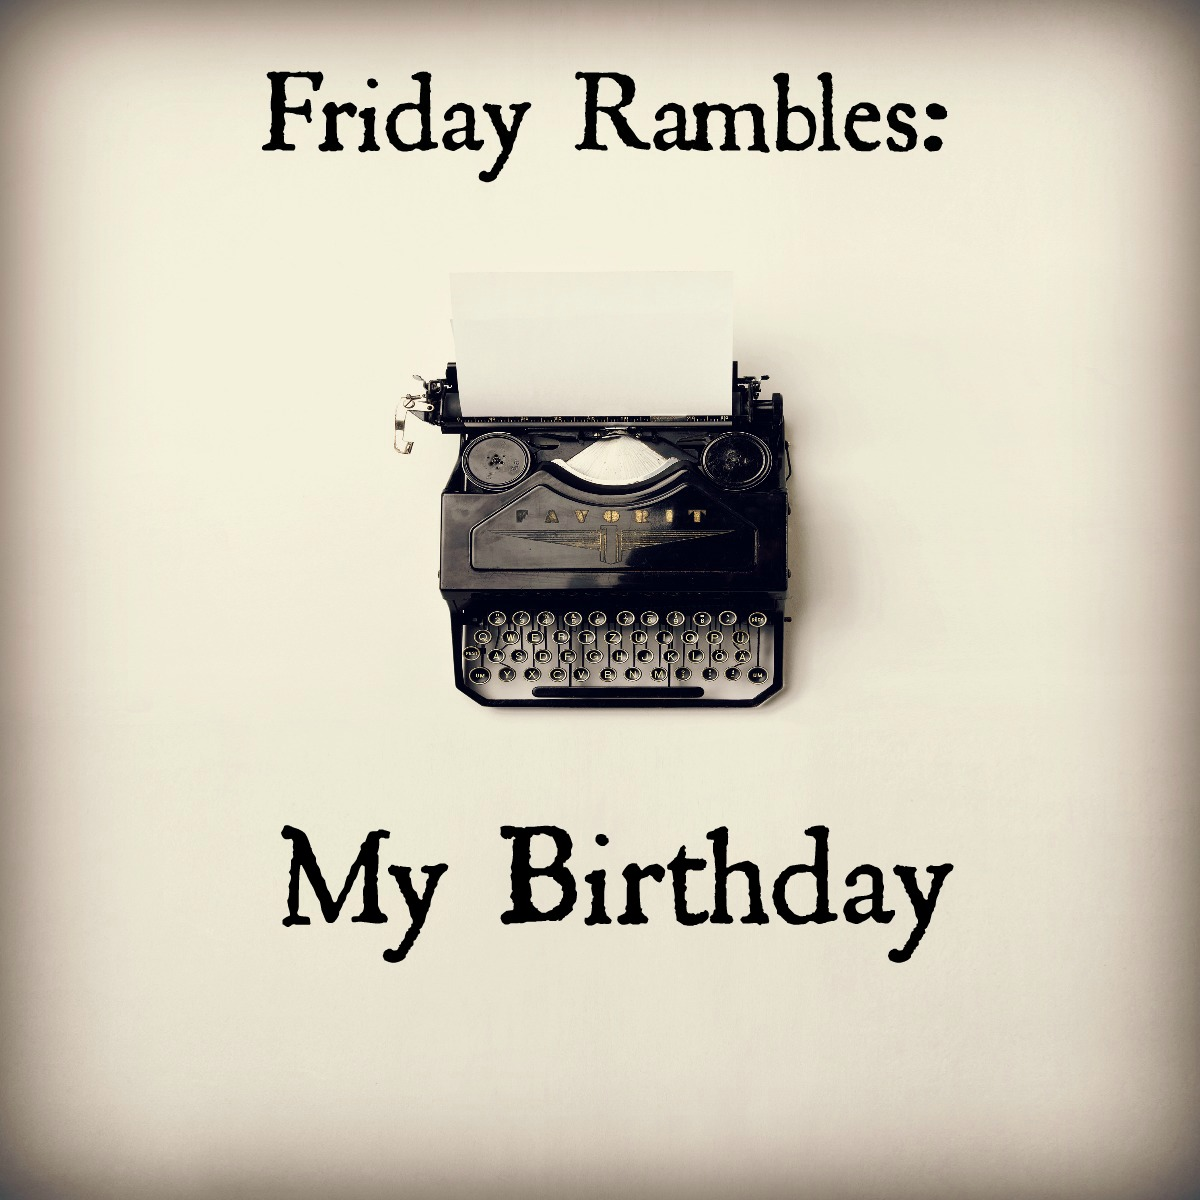 MyBirthdayRamble